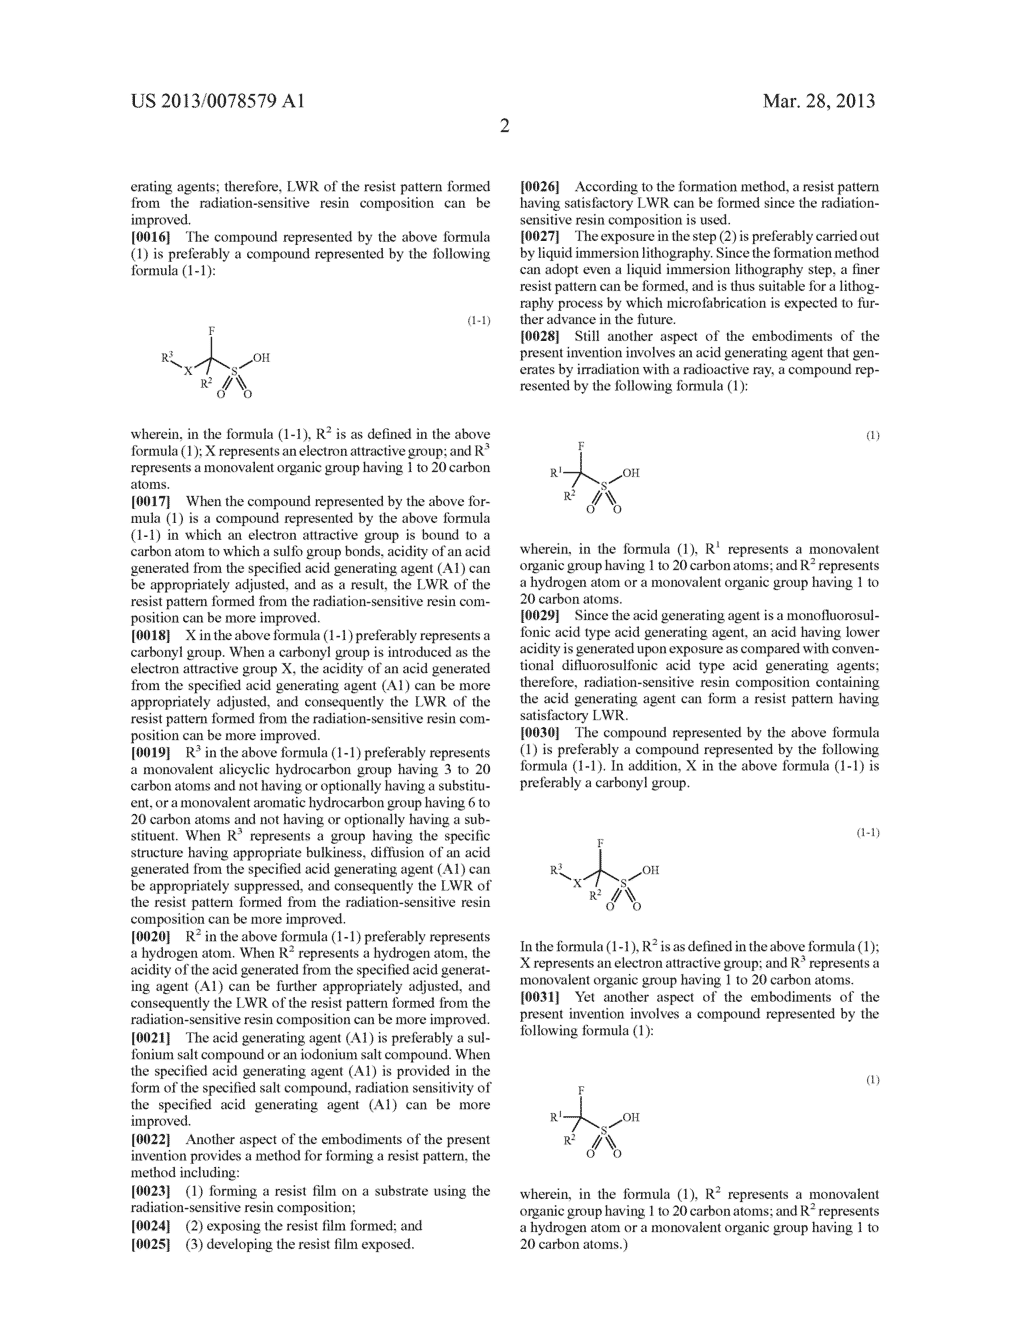 RADIATION-SENSITIVE RESIN COMPOSITION, METHOD FOR FORMING RESIST PATTERN,     ACID GENERATING AGENT AND COMPOUND - diagram, schematic, and image 03